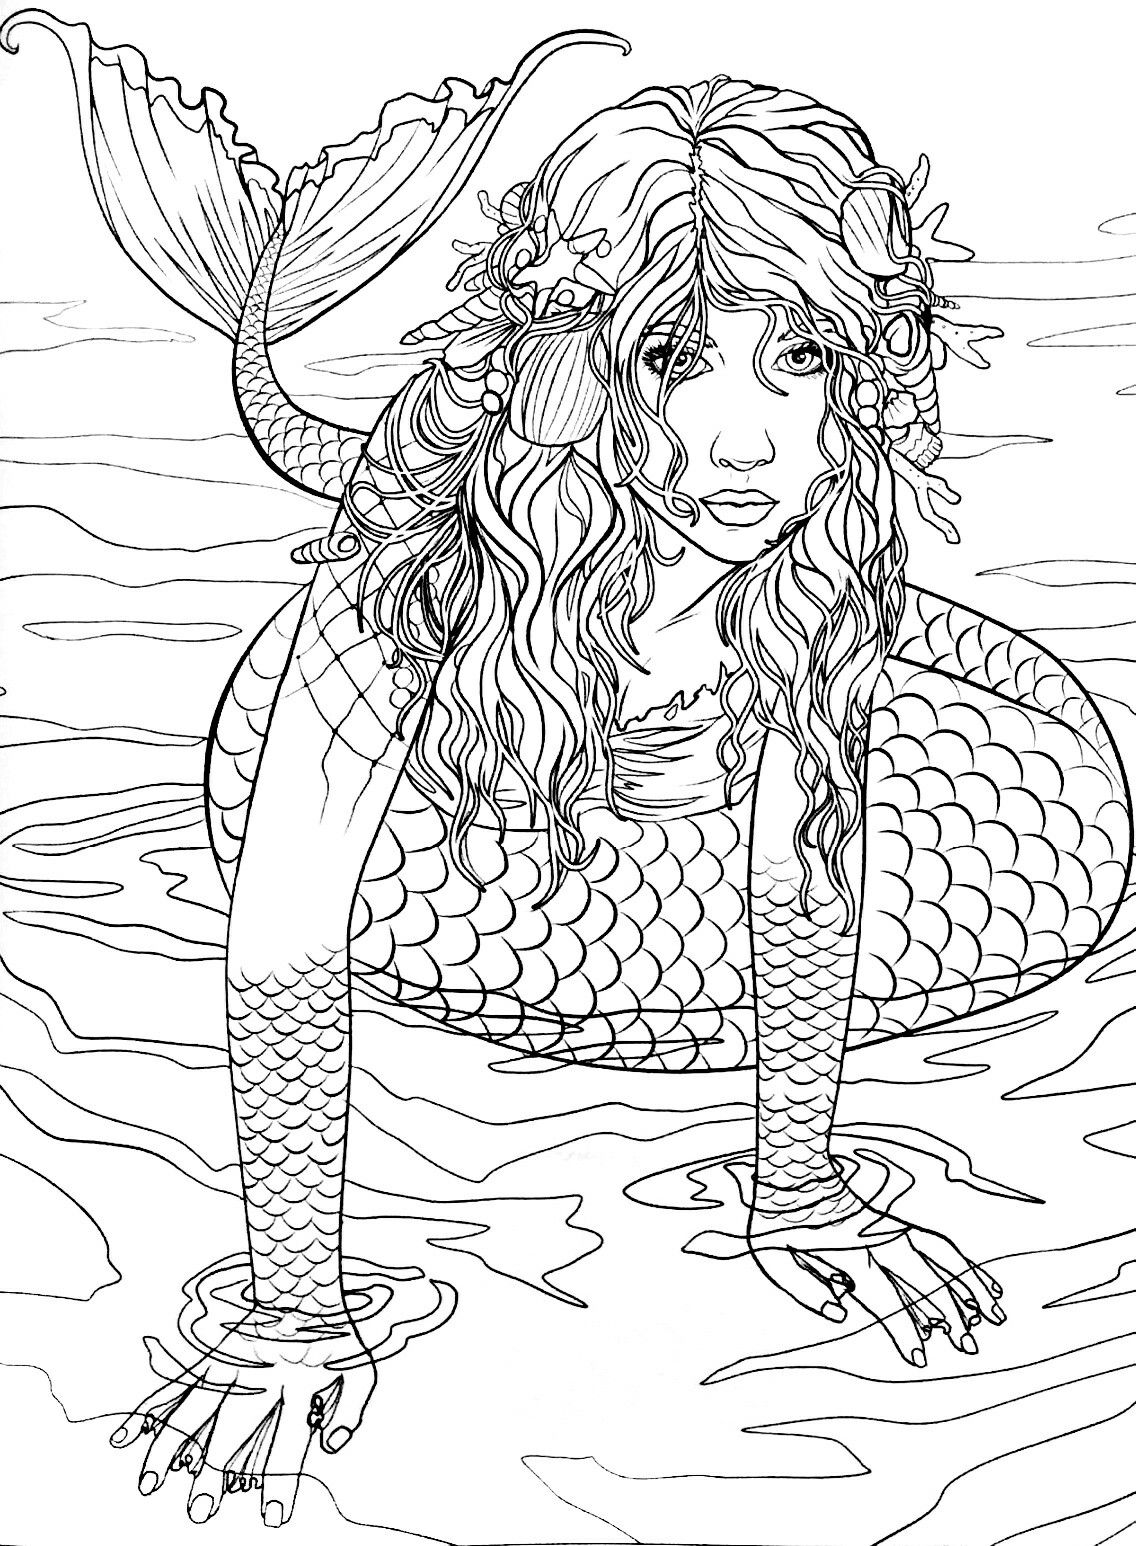 coloring pages mermaids print download find the suitable little mermaid coloring mermaids pages